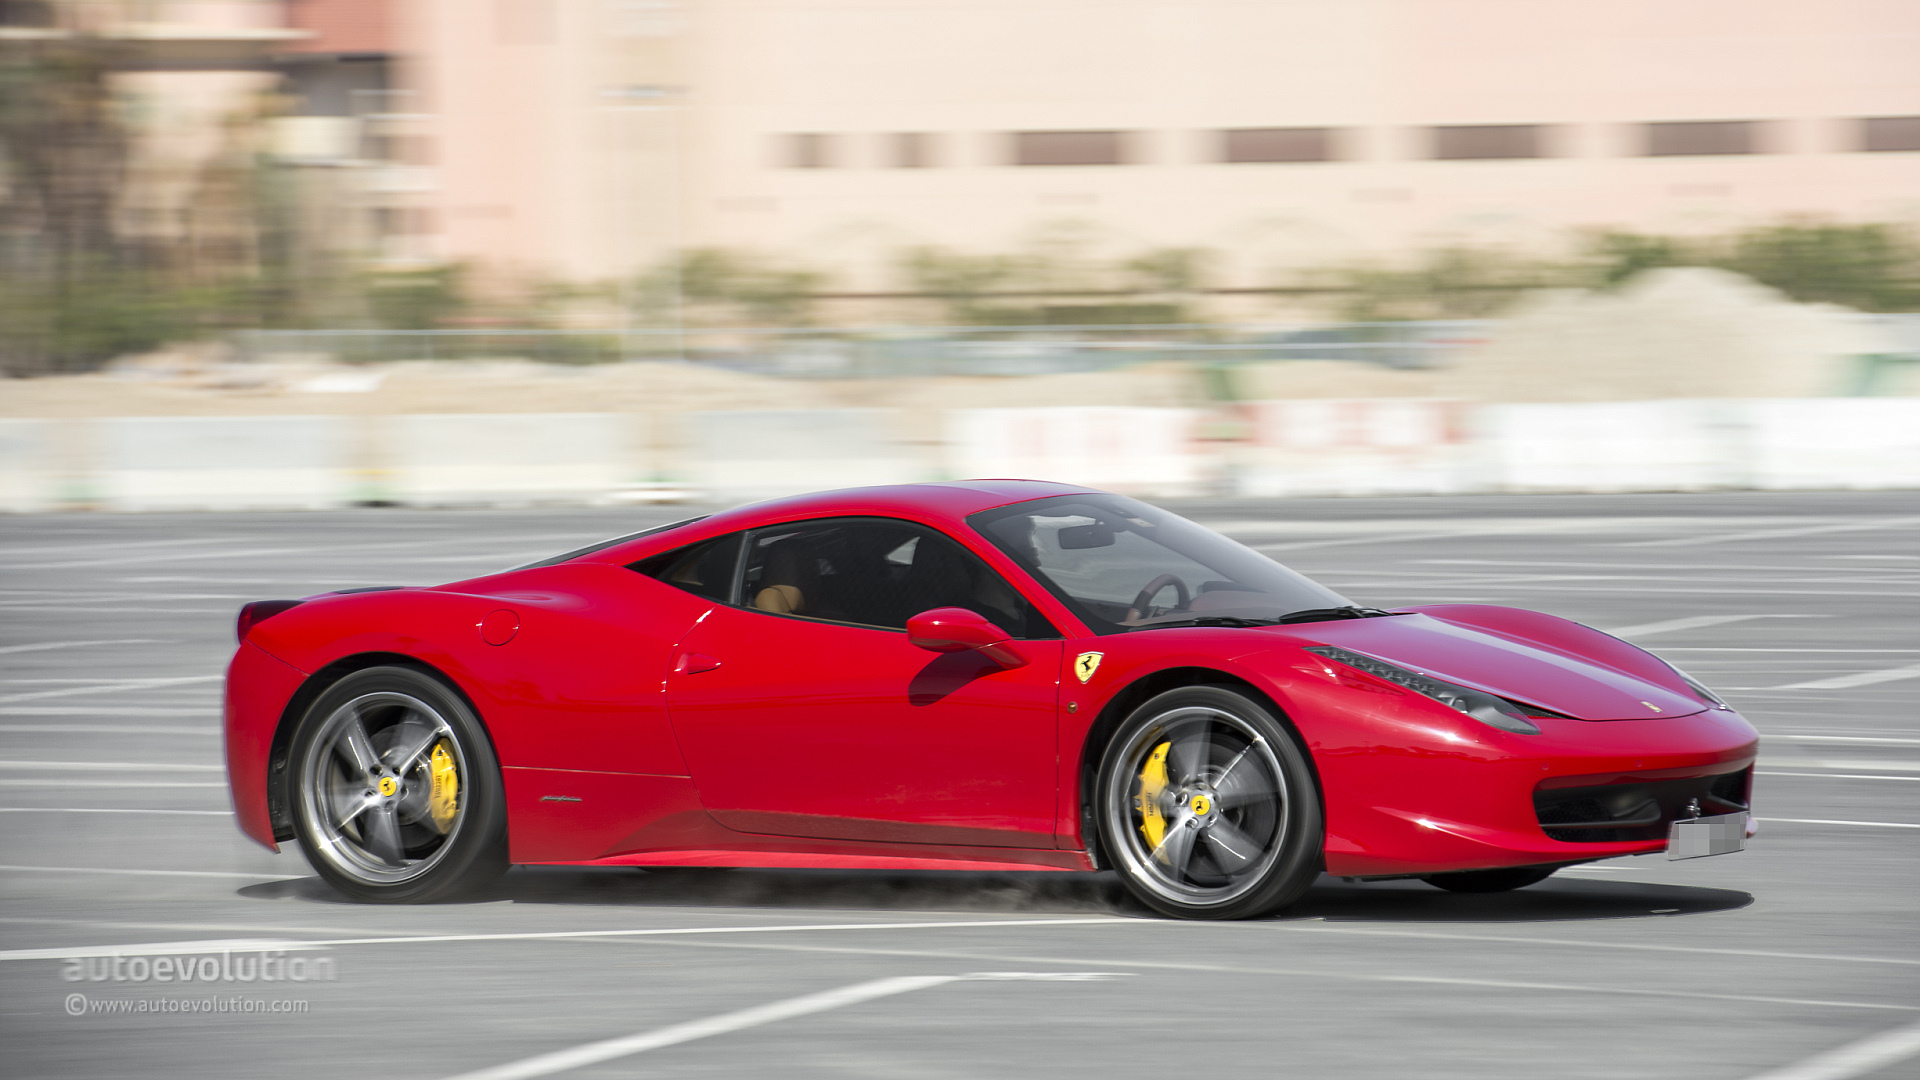 Ferrari 458 Italia Review Autoevolution